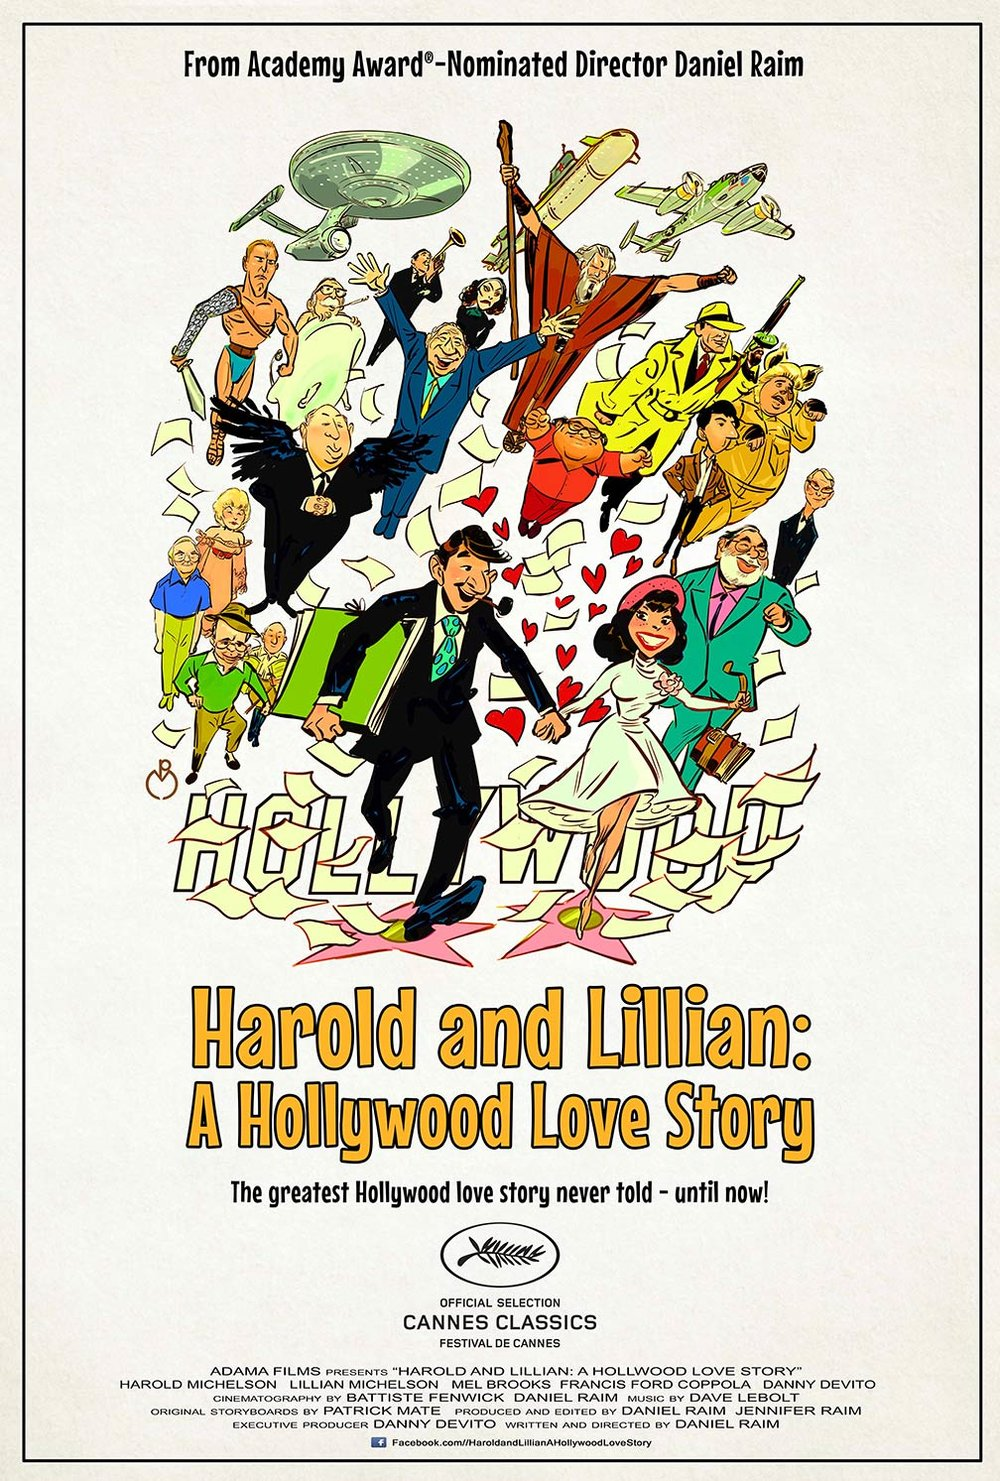 """Harold and Lillian: A Hollywood Love Story (2015), dir. by Daniel Raim"